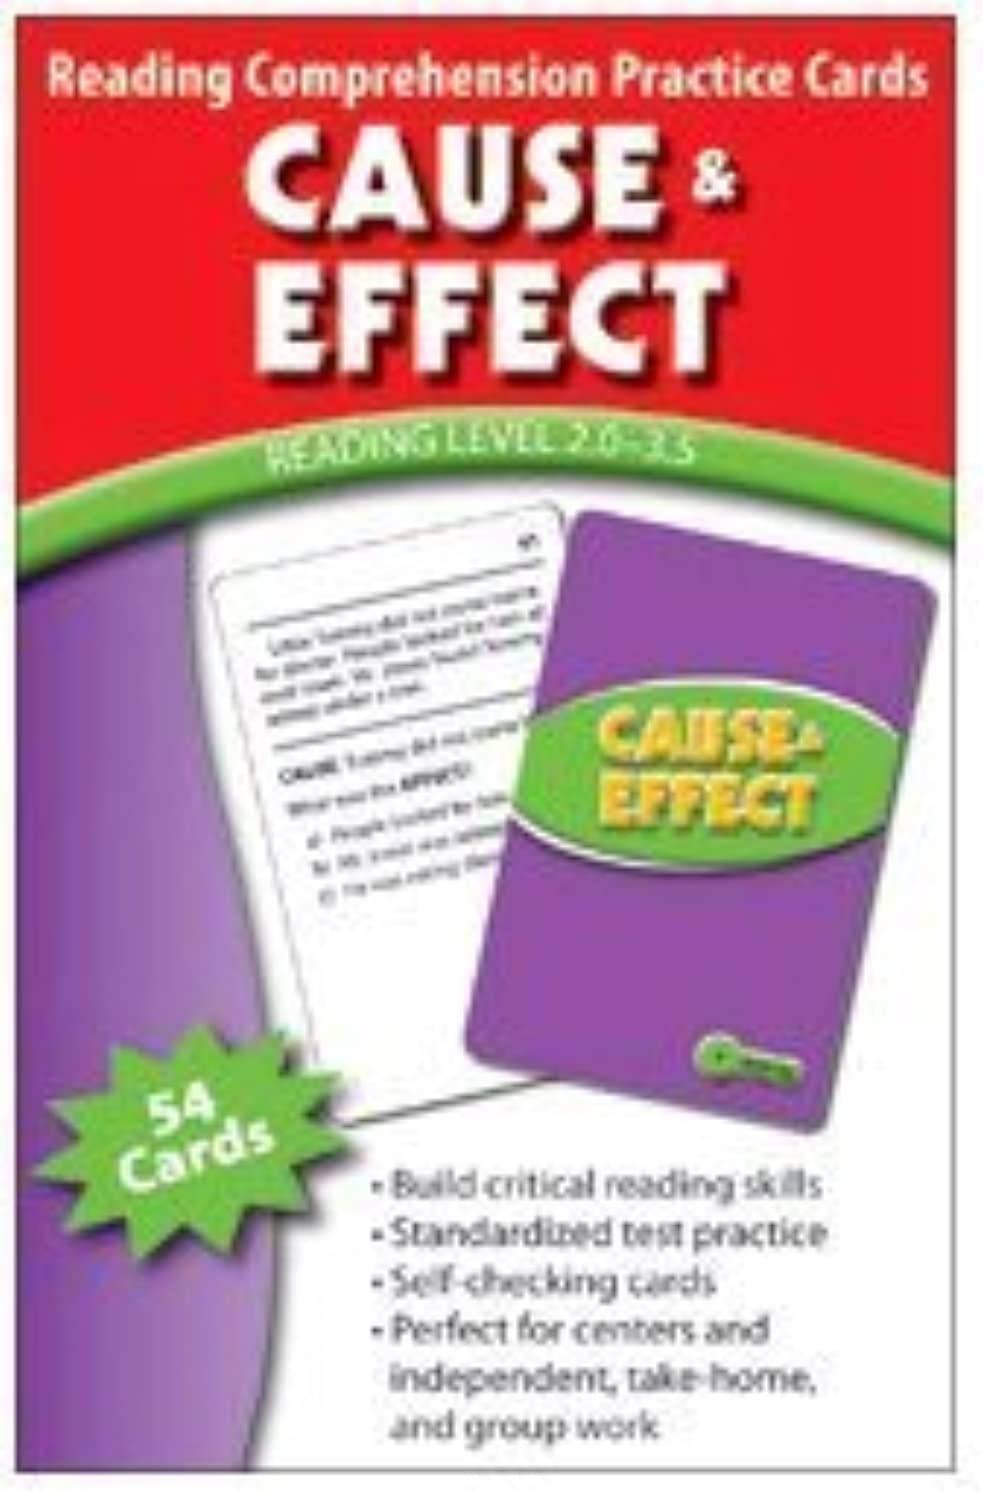 Cause & Effect Reading Comprehension Practice Cards by Edupress